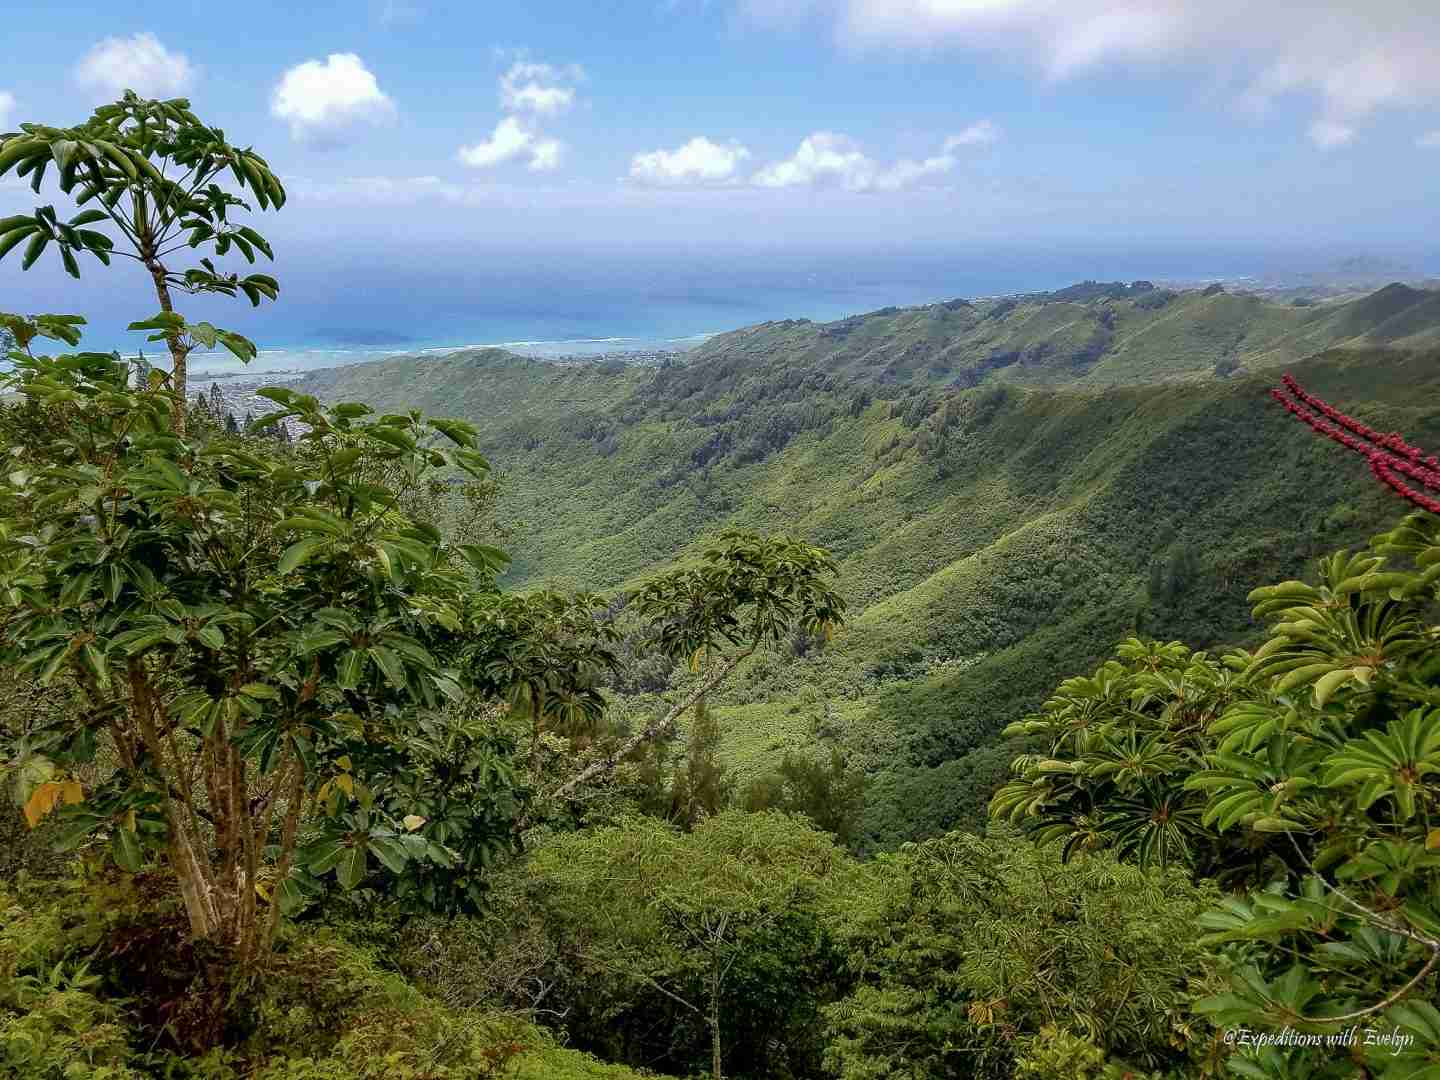 Green mountain jungle meets the electric blue Hawaii coast line on the views from the Kuilouou Ridge Trail.